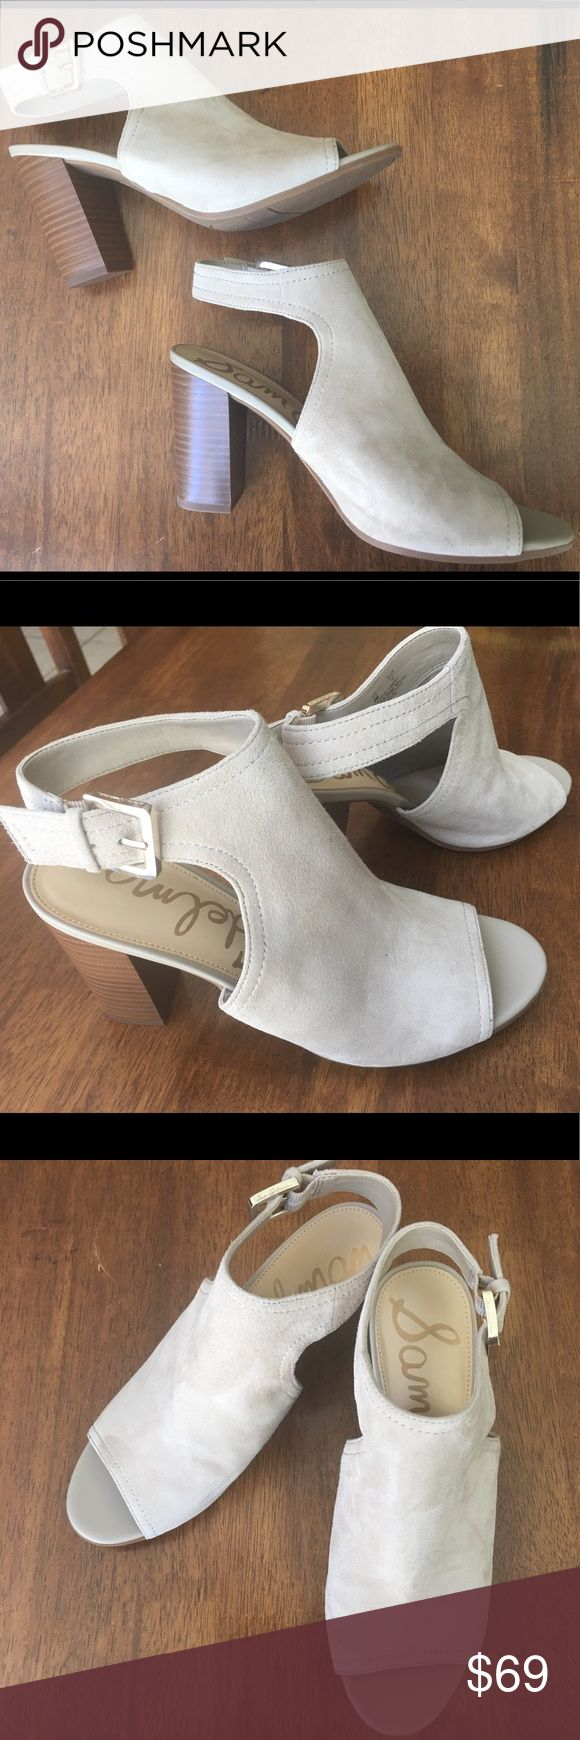 "New SAM EDELMAN Lt Grey heels Sz8 NWT New SAM EDELMAN Lt Grey Soft Suede heels Sz8 NWT full leather lined insole, rubber outer sole approx 3"" heel; please see spot on side of shoe, last pix. Never Worn. NWT Sam Edelman Shoes Heels"